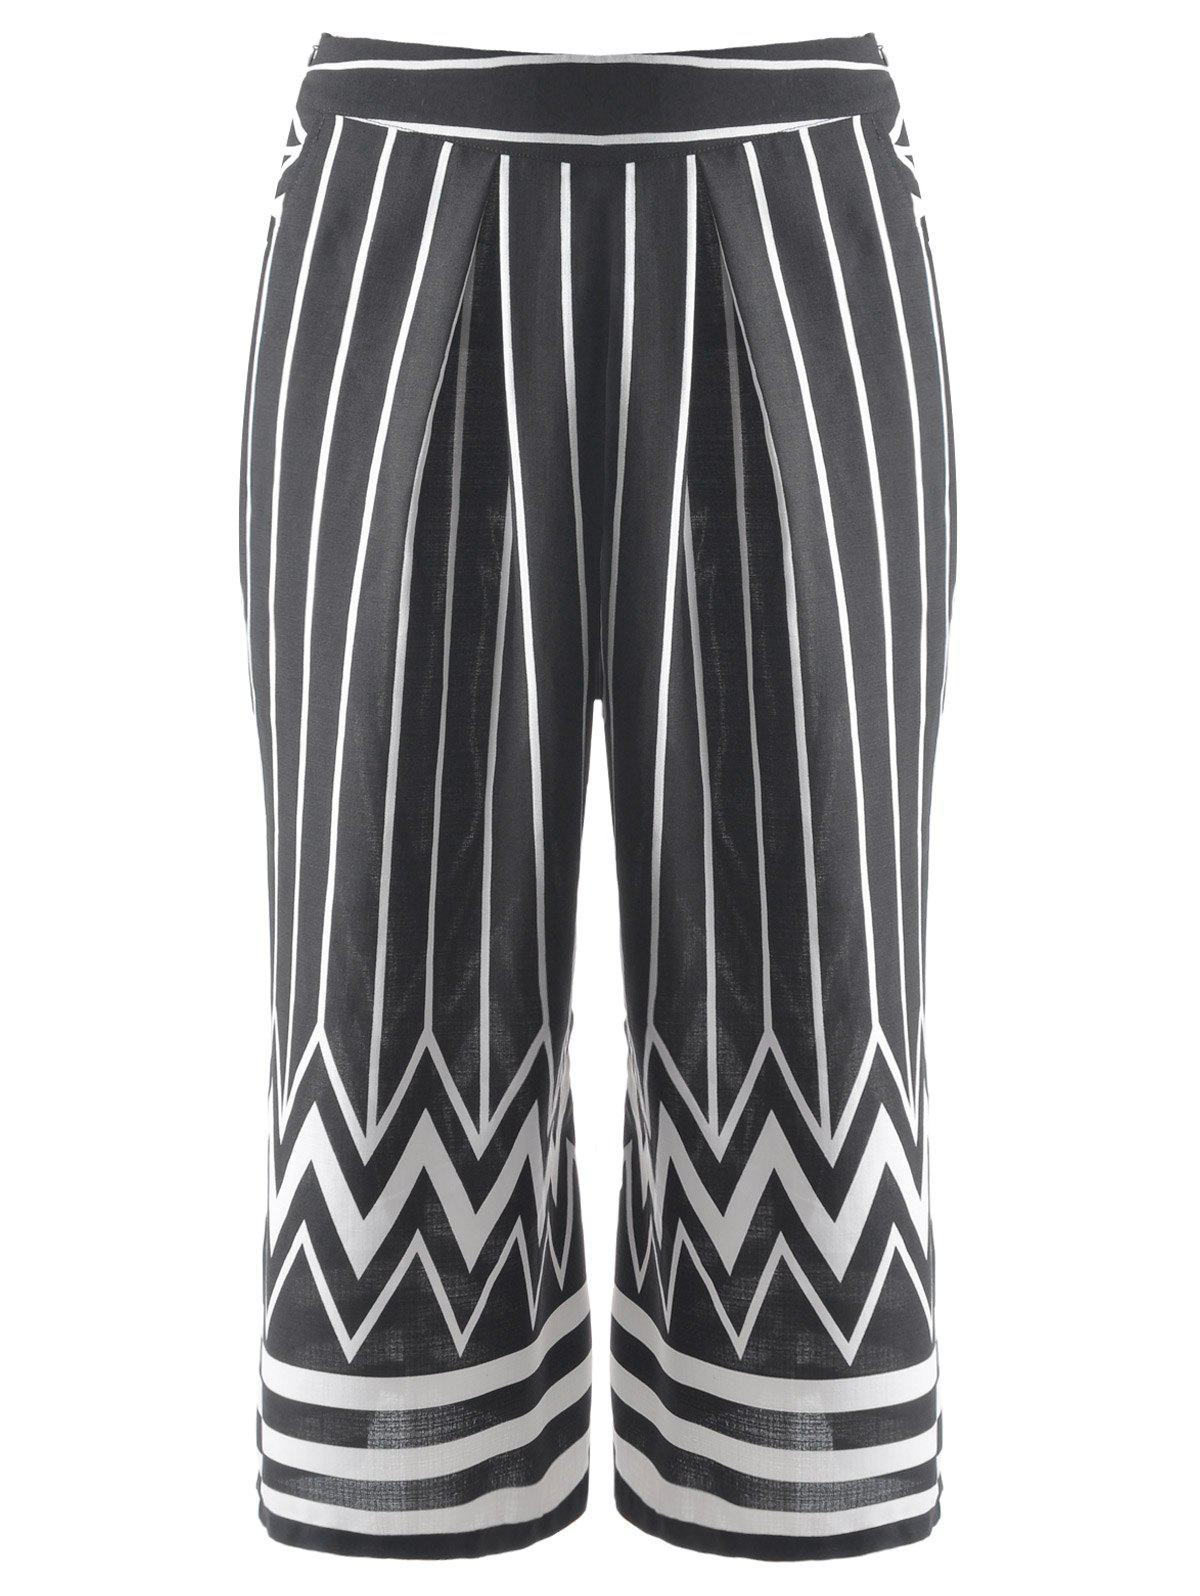 Fashionable Women's Striped Zig Zag Cropped Pants - BLACK M